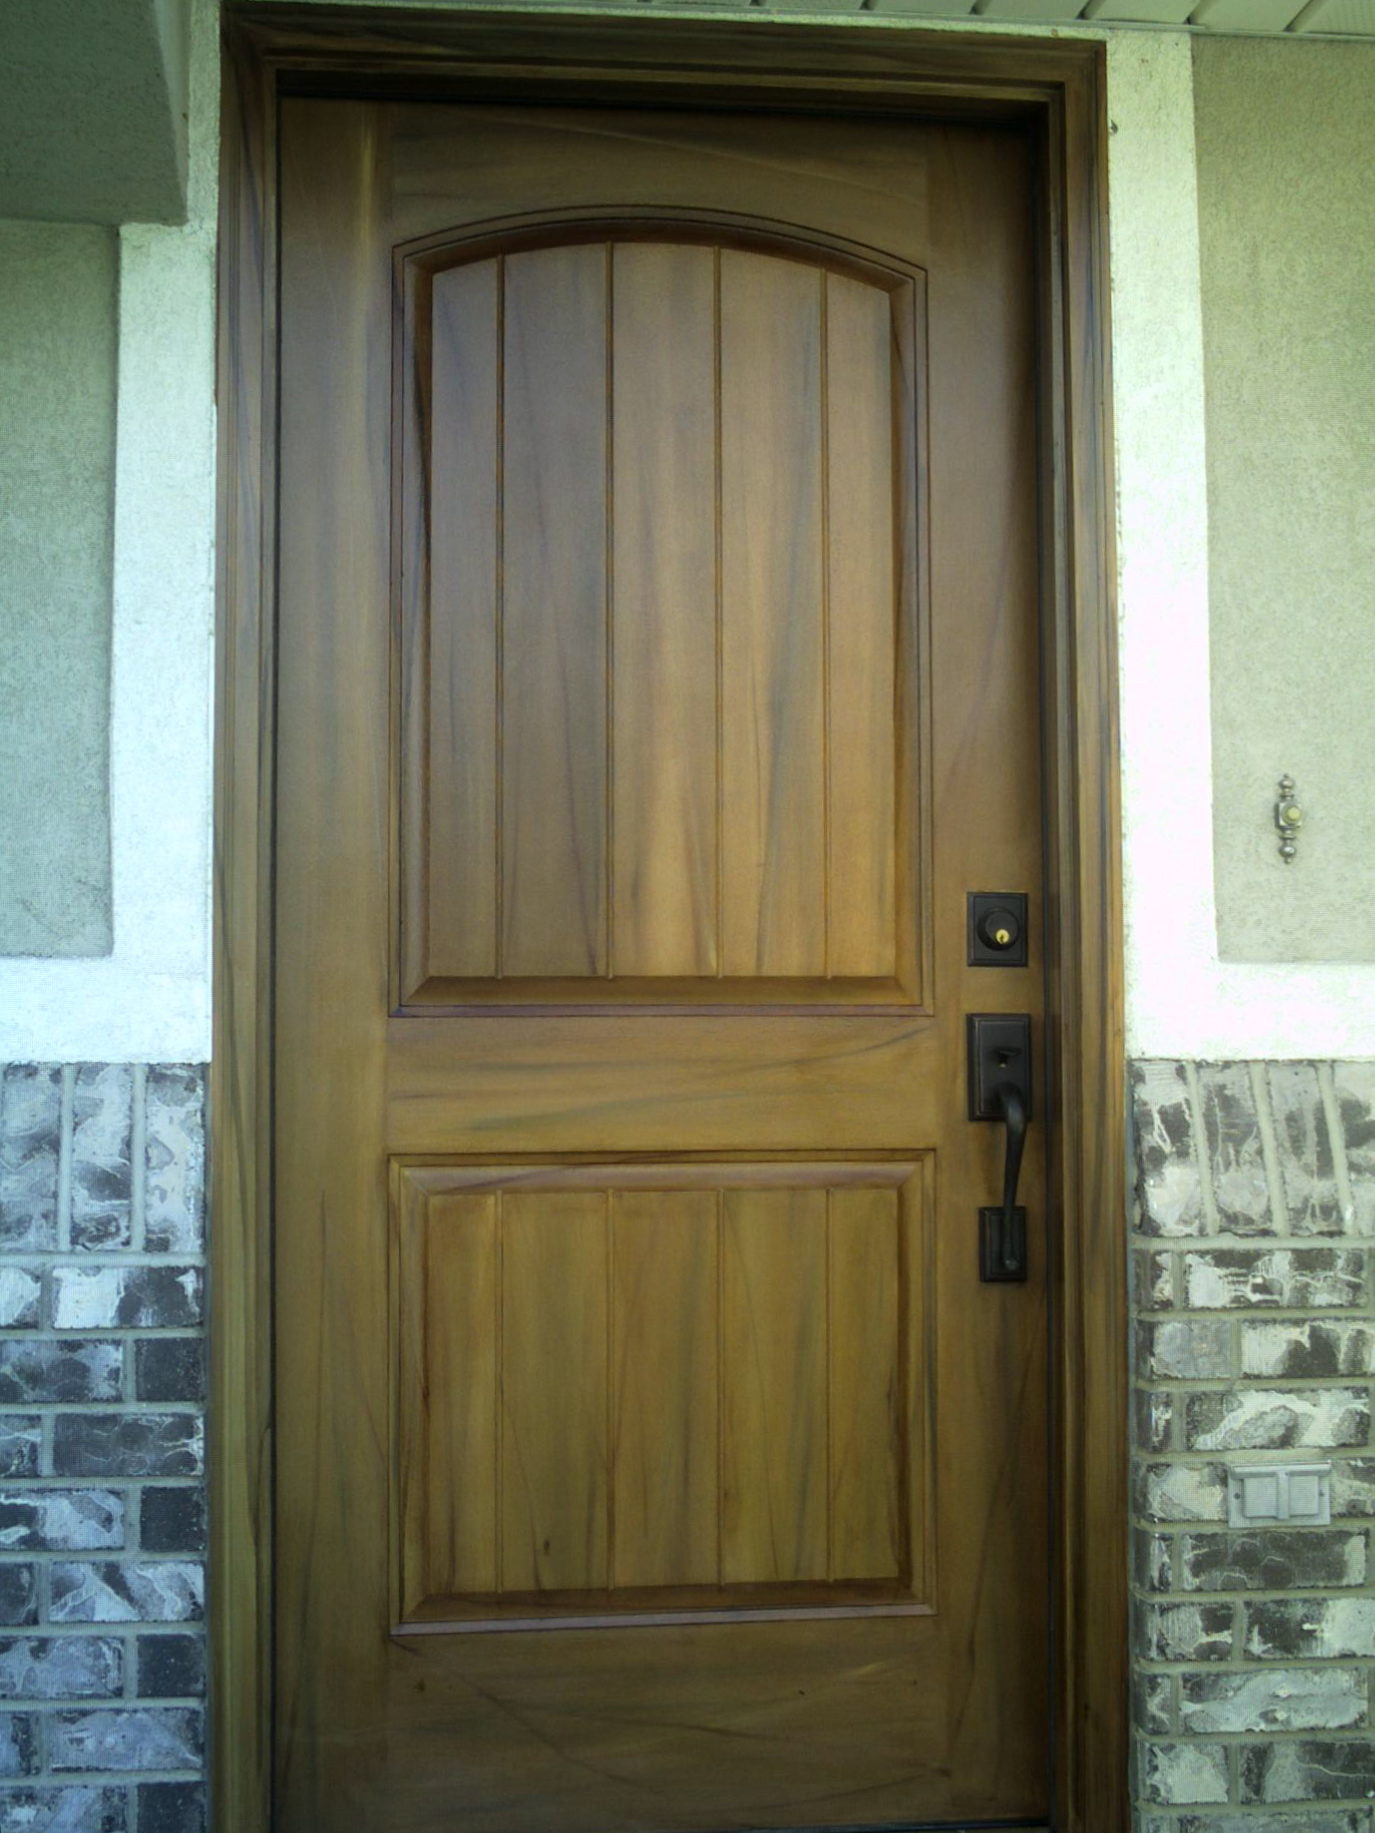 1833 #5D4F2B This Woodgrained Exterior Fiberglass Door Matches picture/photo Exterior Fiberglass Doors 39991375